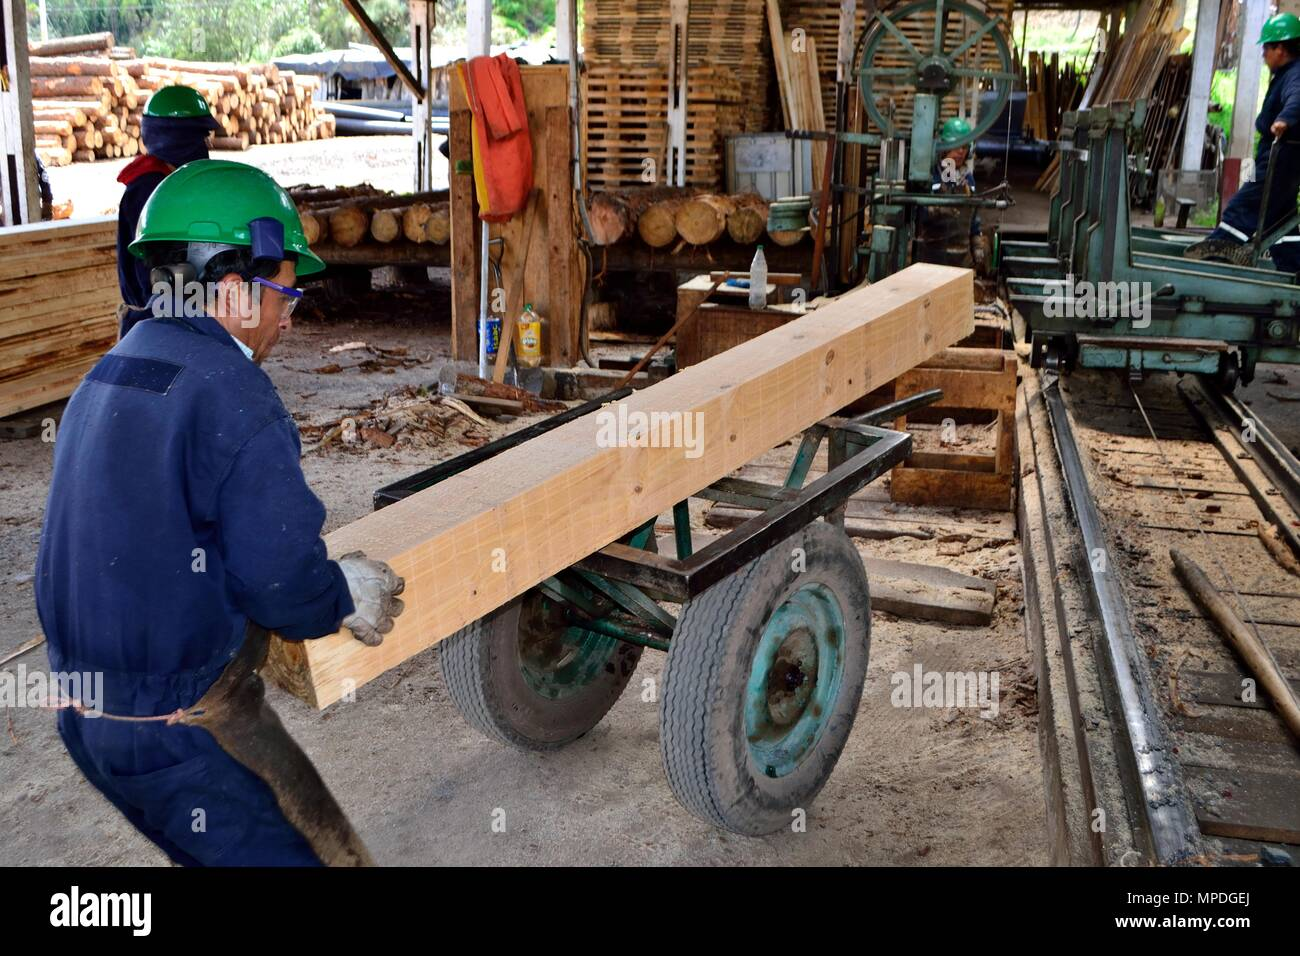 Sawmill Farm Stock Photos & Sawmill Farm Stock Images - Page 2 - Alamy